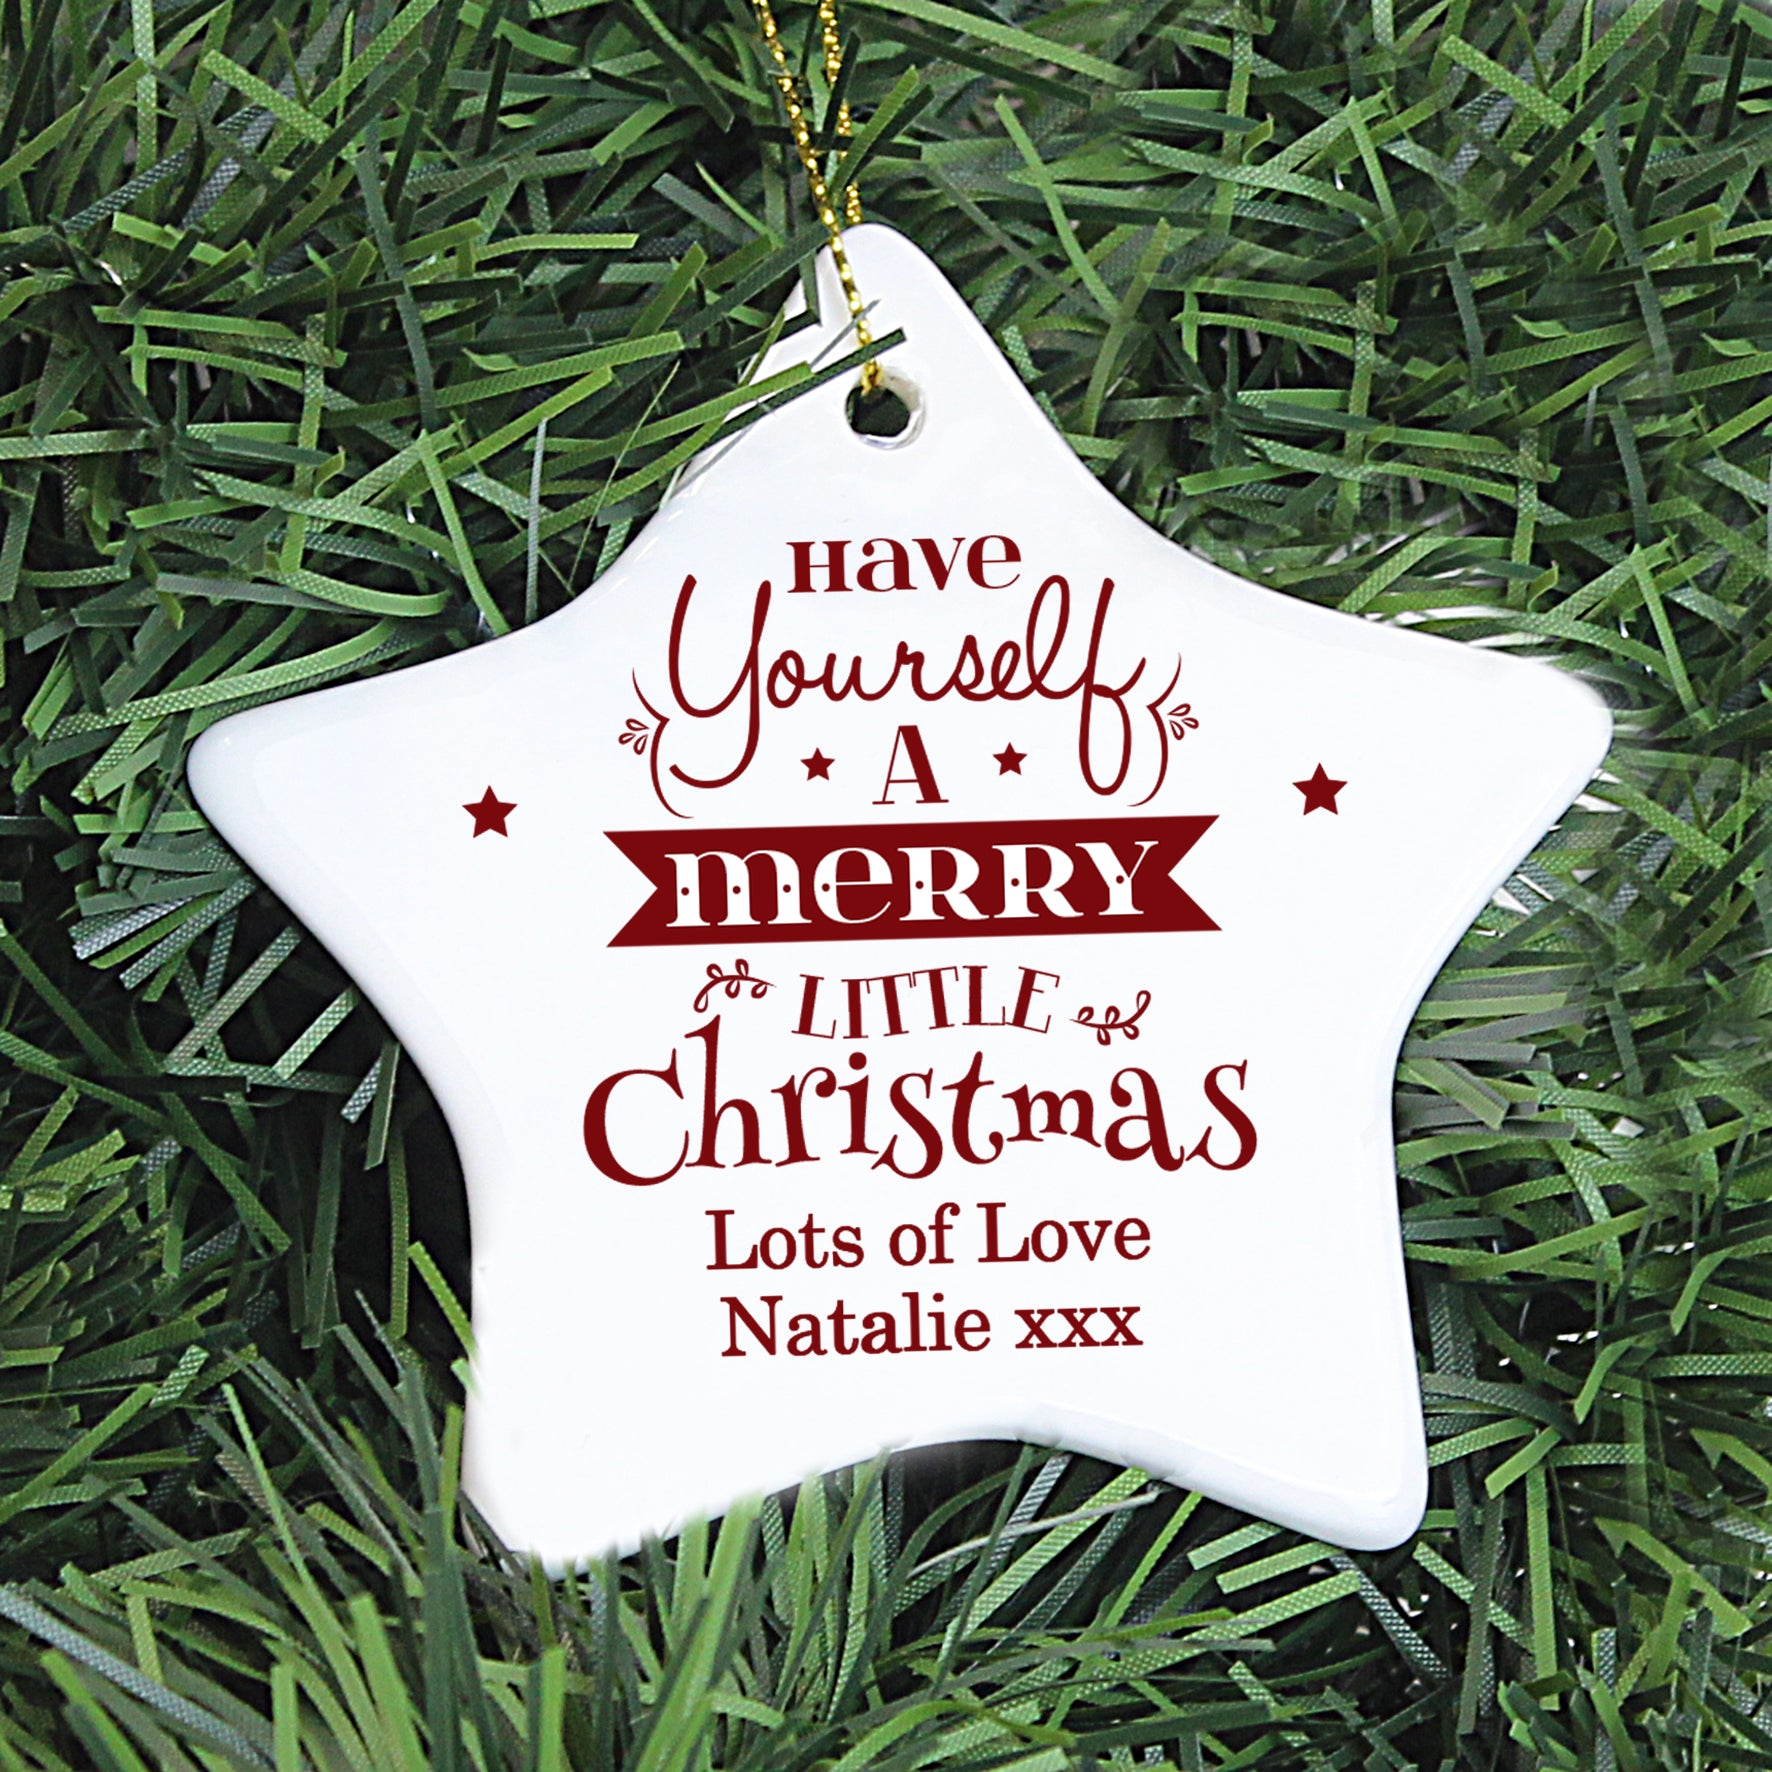 Personalised white ceramic star shaped Christmas decoration which can be hung on a tree. The decoration has 'Have yourself a merry little Christmas' printed on it in a mixture of upper and lower case fonts in red. Below this you can add your own special message over 1 or 2 lines which will also be printed in red.